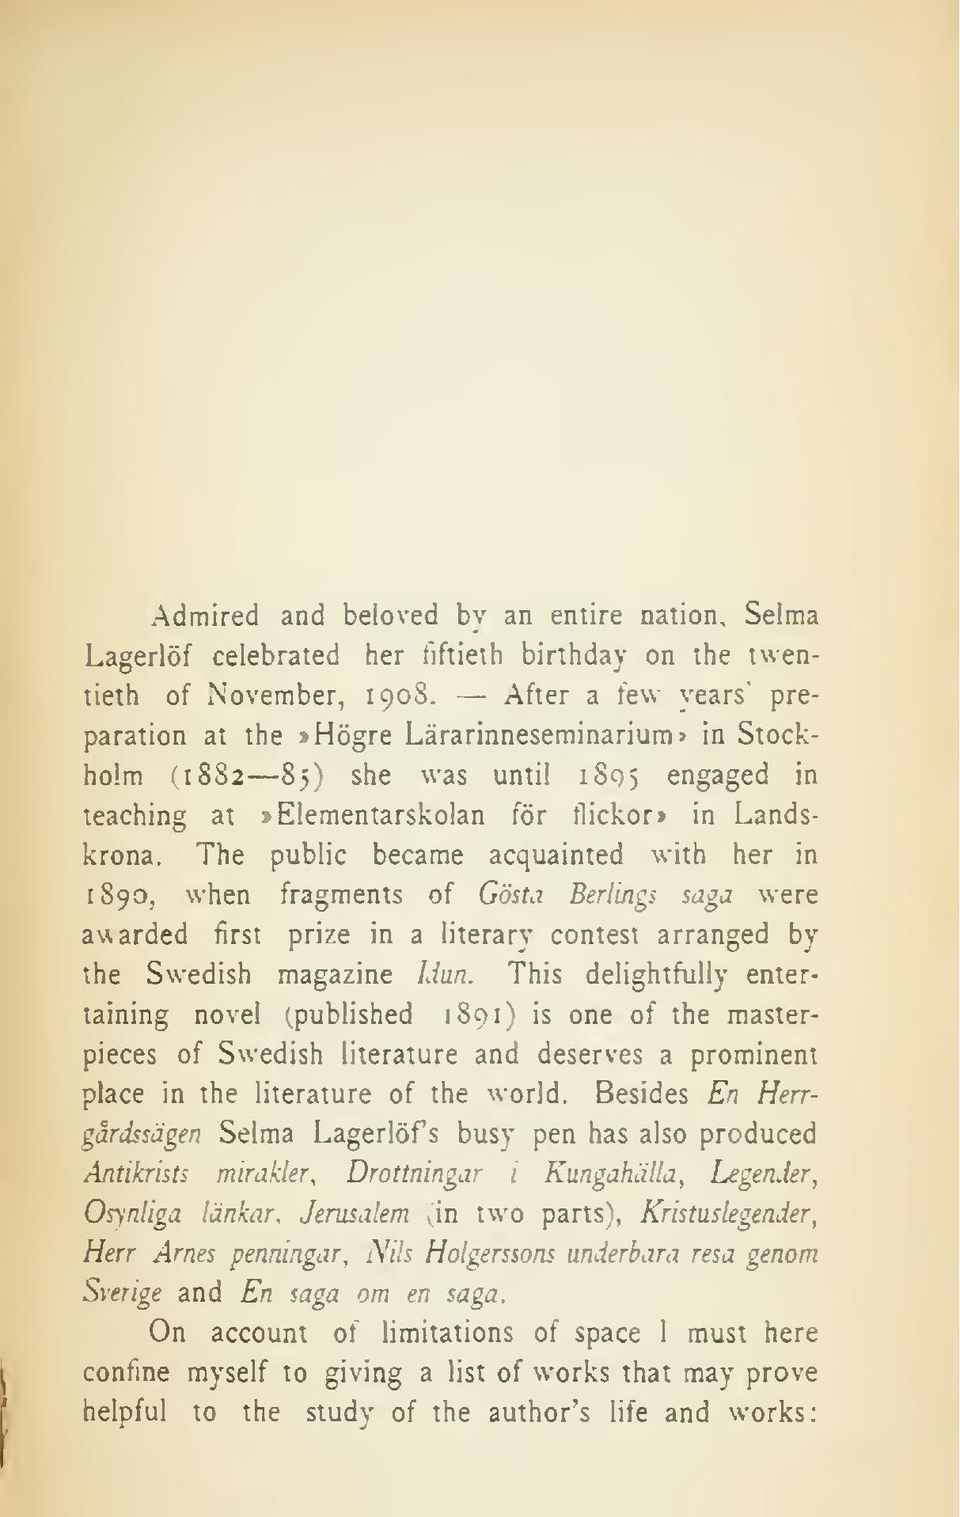 The public became acquainted with her in 1890, when fragments of Gösta Berlin: rg 1.vere awarded first prize in a literary contest arranged by the Swedish magazine Liun.